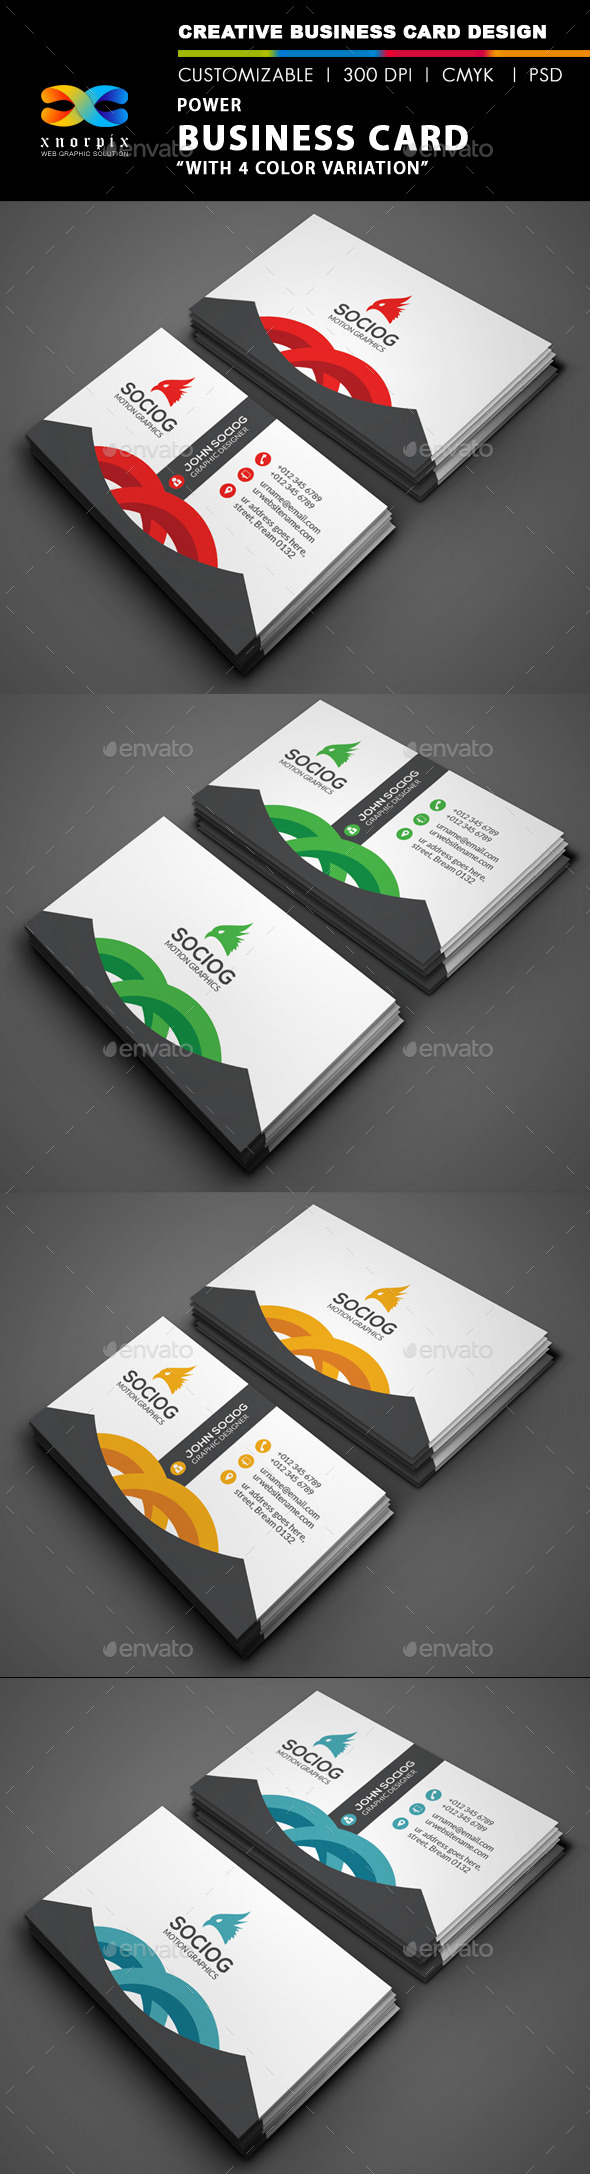 Power Business Card - Corporate Business Cards